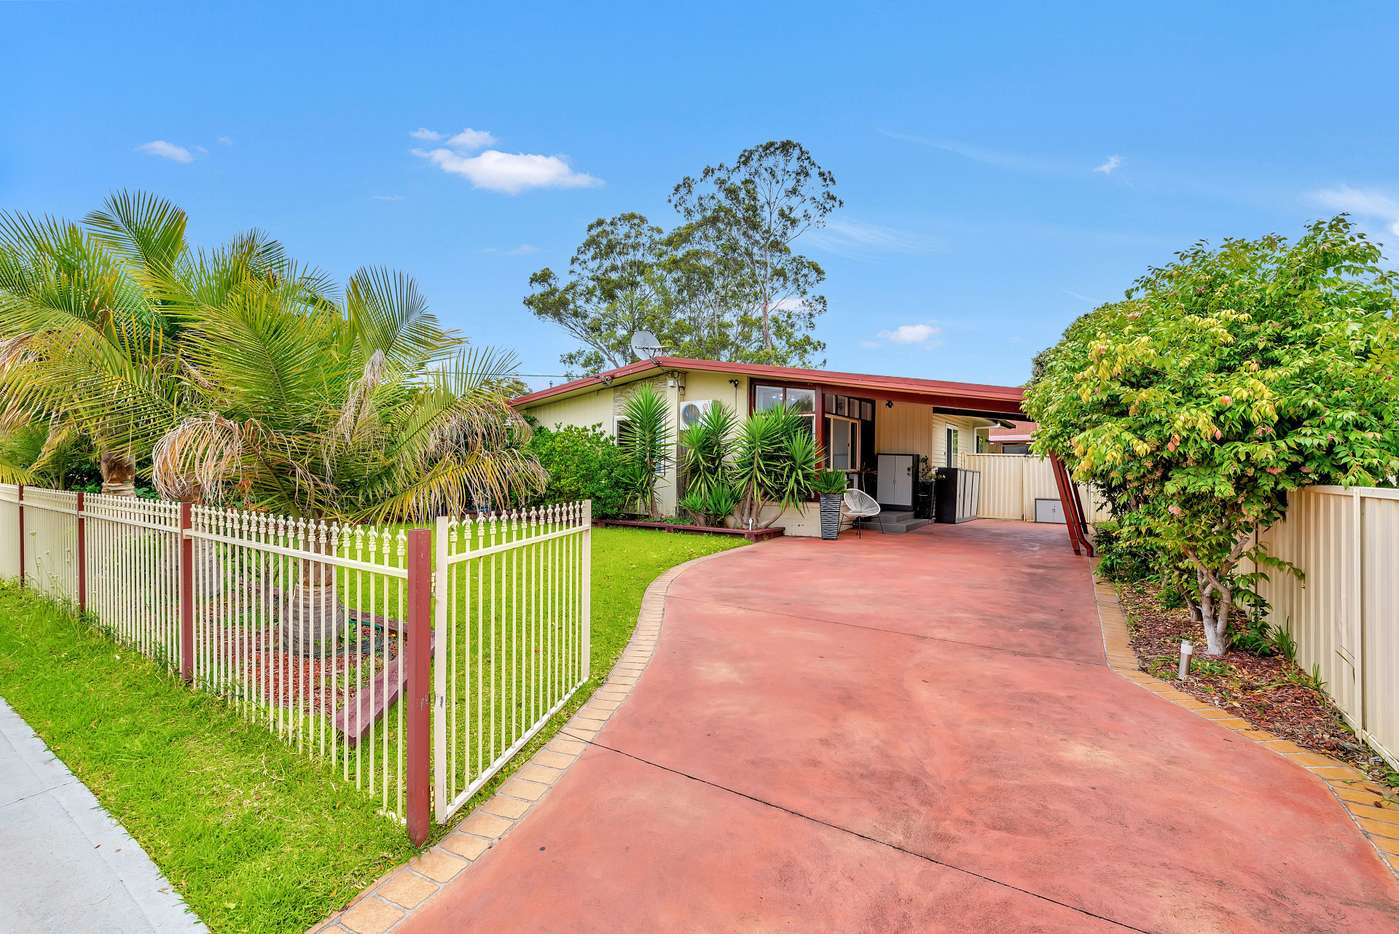 Main view of Homely house listing, Address available on request, Miller, NSW 2168